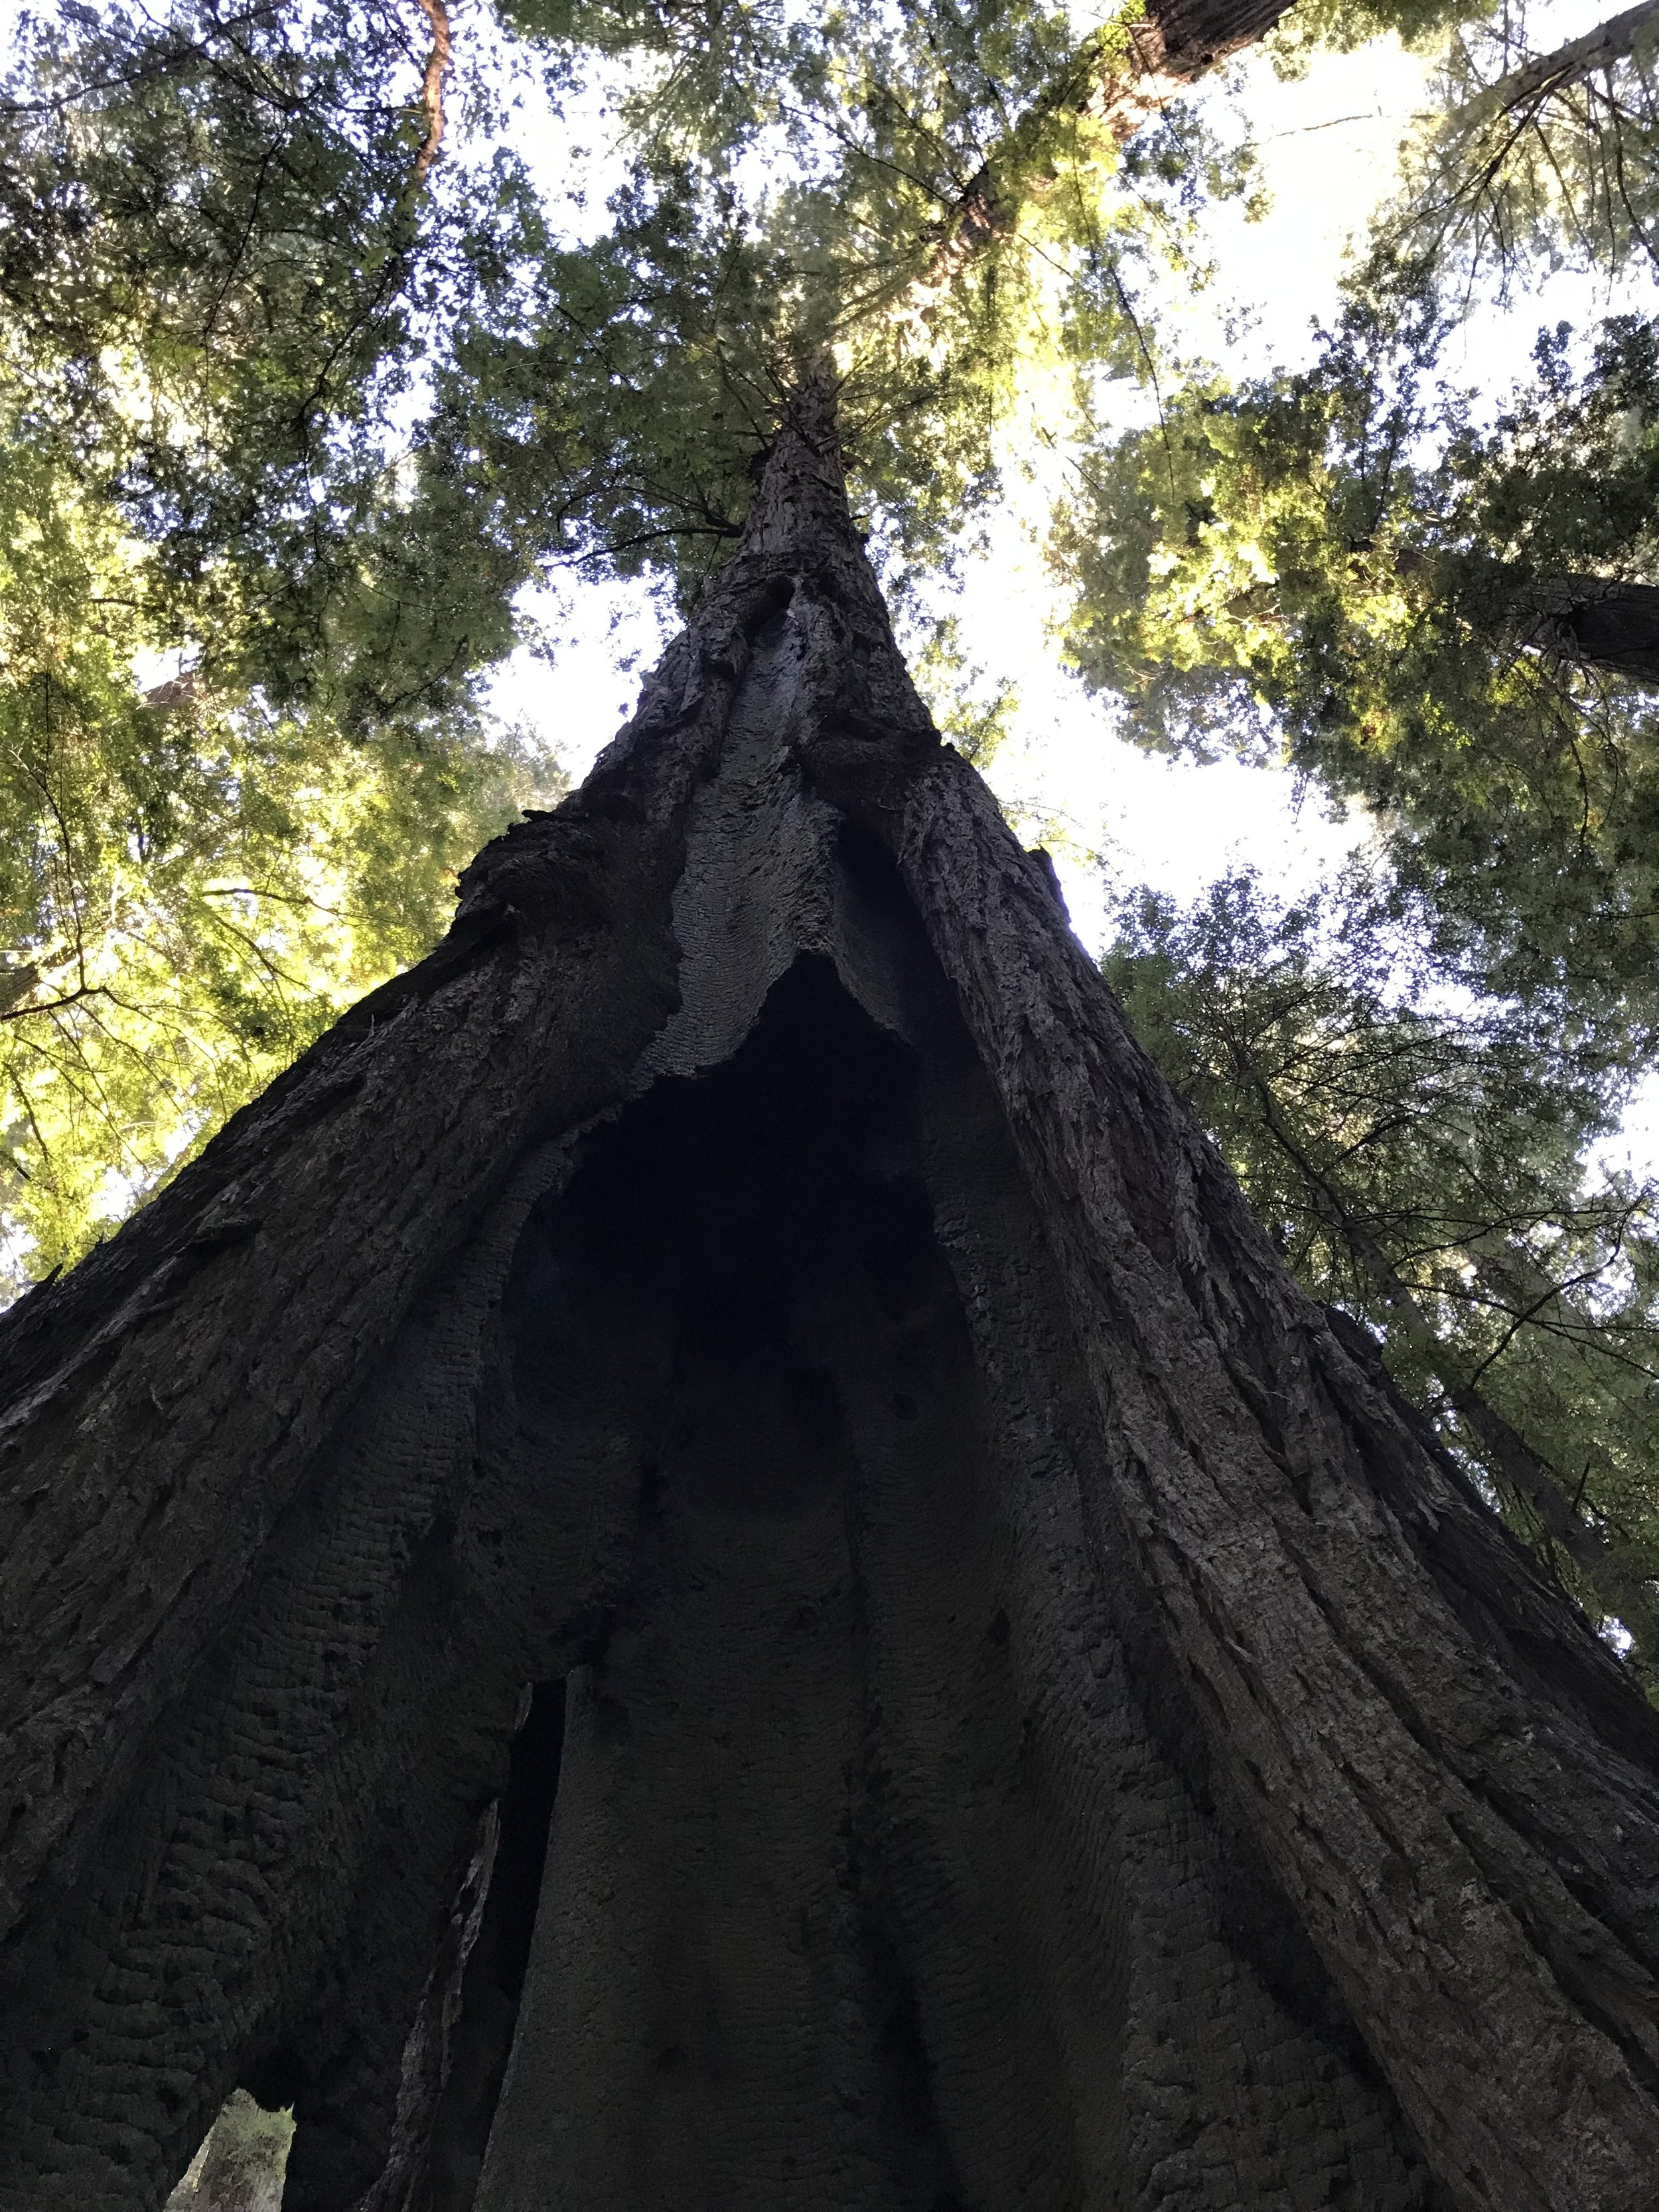 Hike Two: Rockefeller Grove in the same state park has some GIANTS too. Both of these are easy and flat loops!